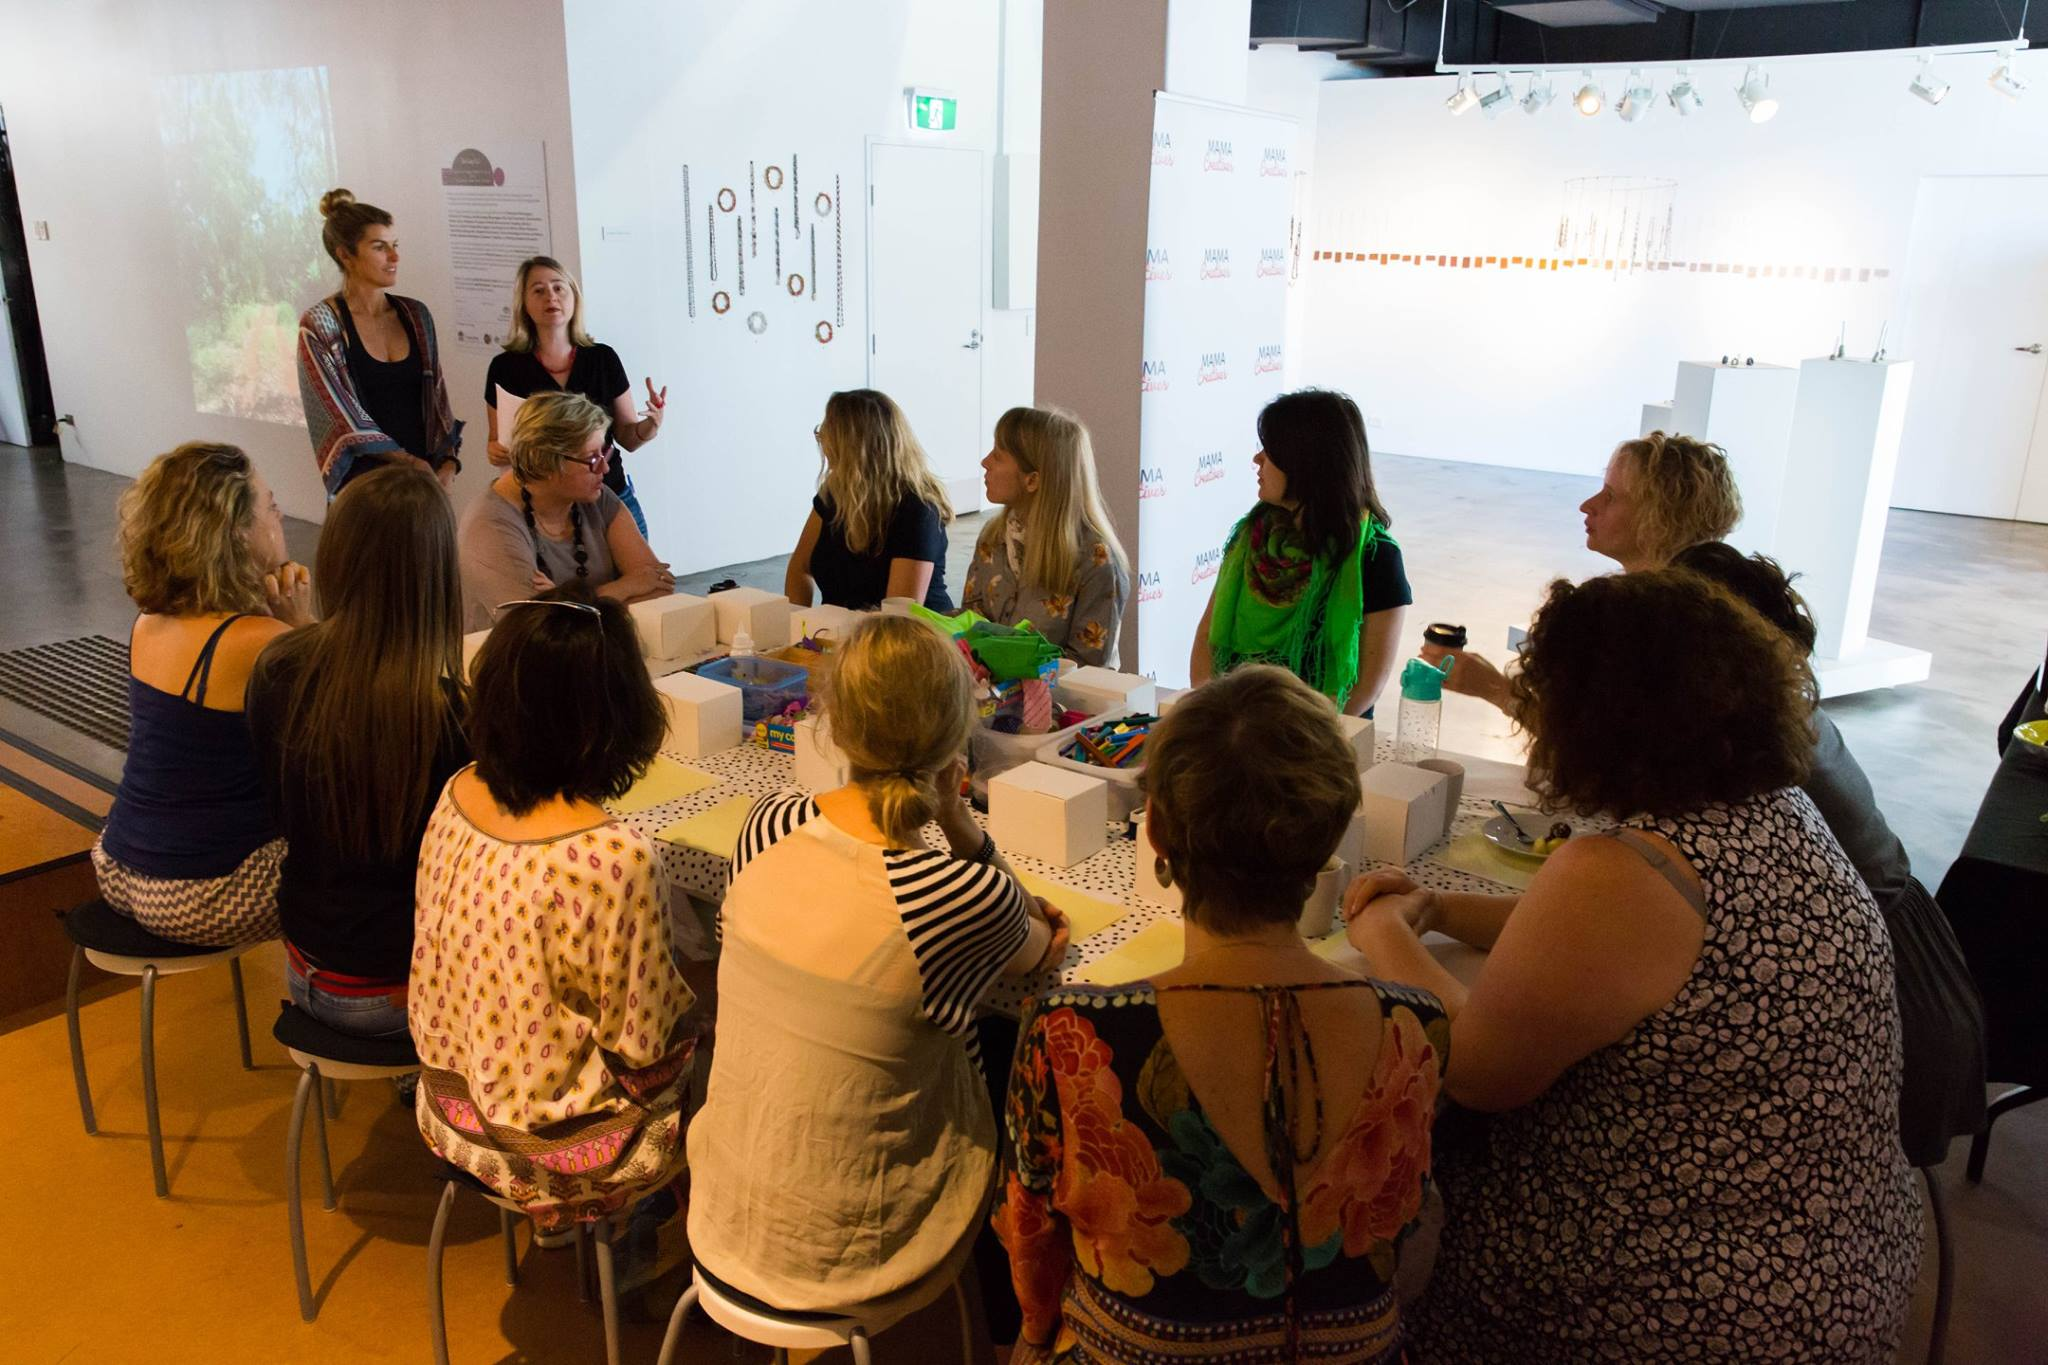 Creative Mama Workshop, facilitated by Lizzy Williamson, dancer & founder Two Minute Moves together with Anna Kellerman, art therapist at Sydney Anxiety Clinic & founder Mama Creatives.